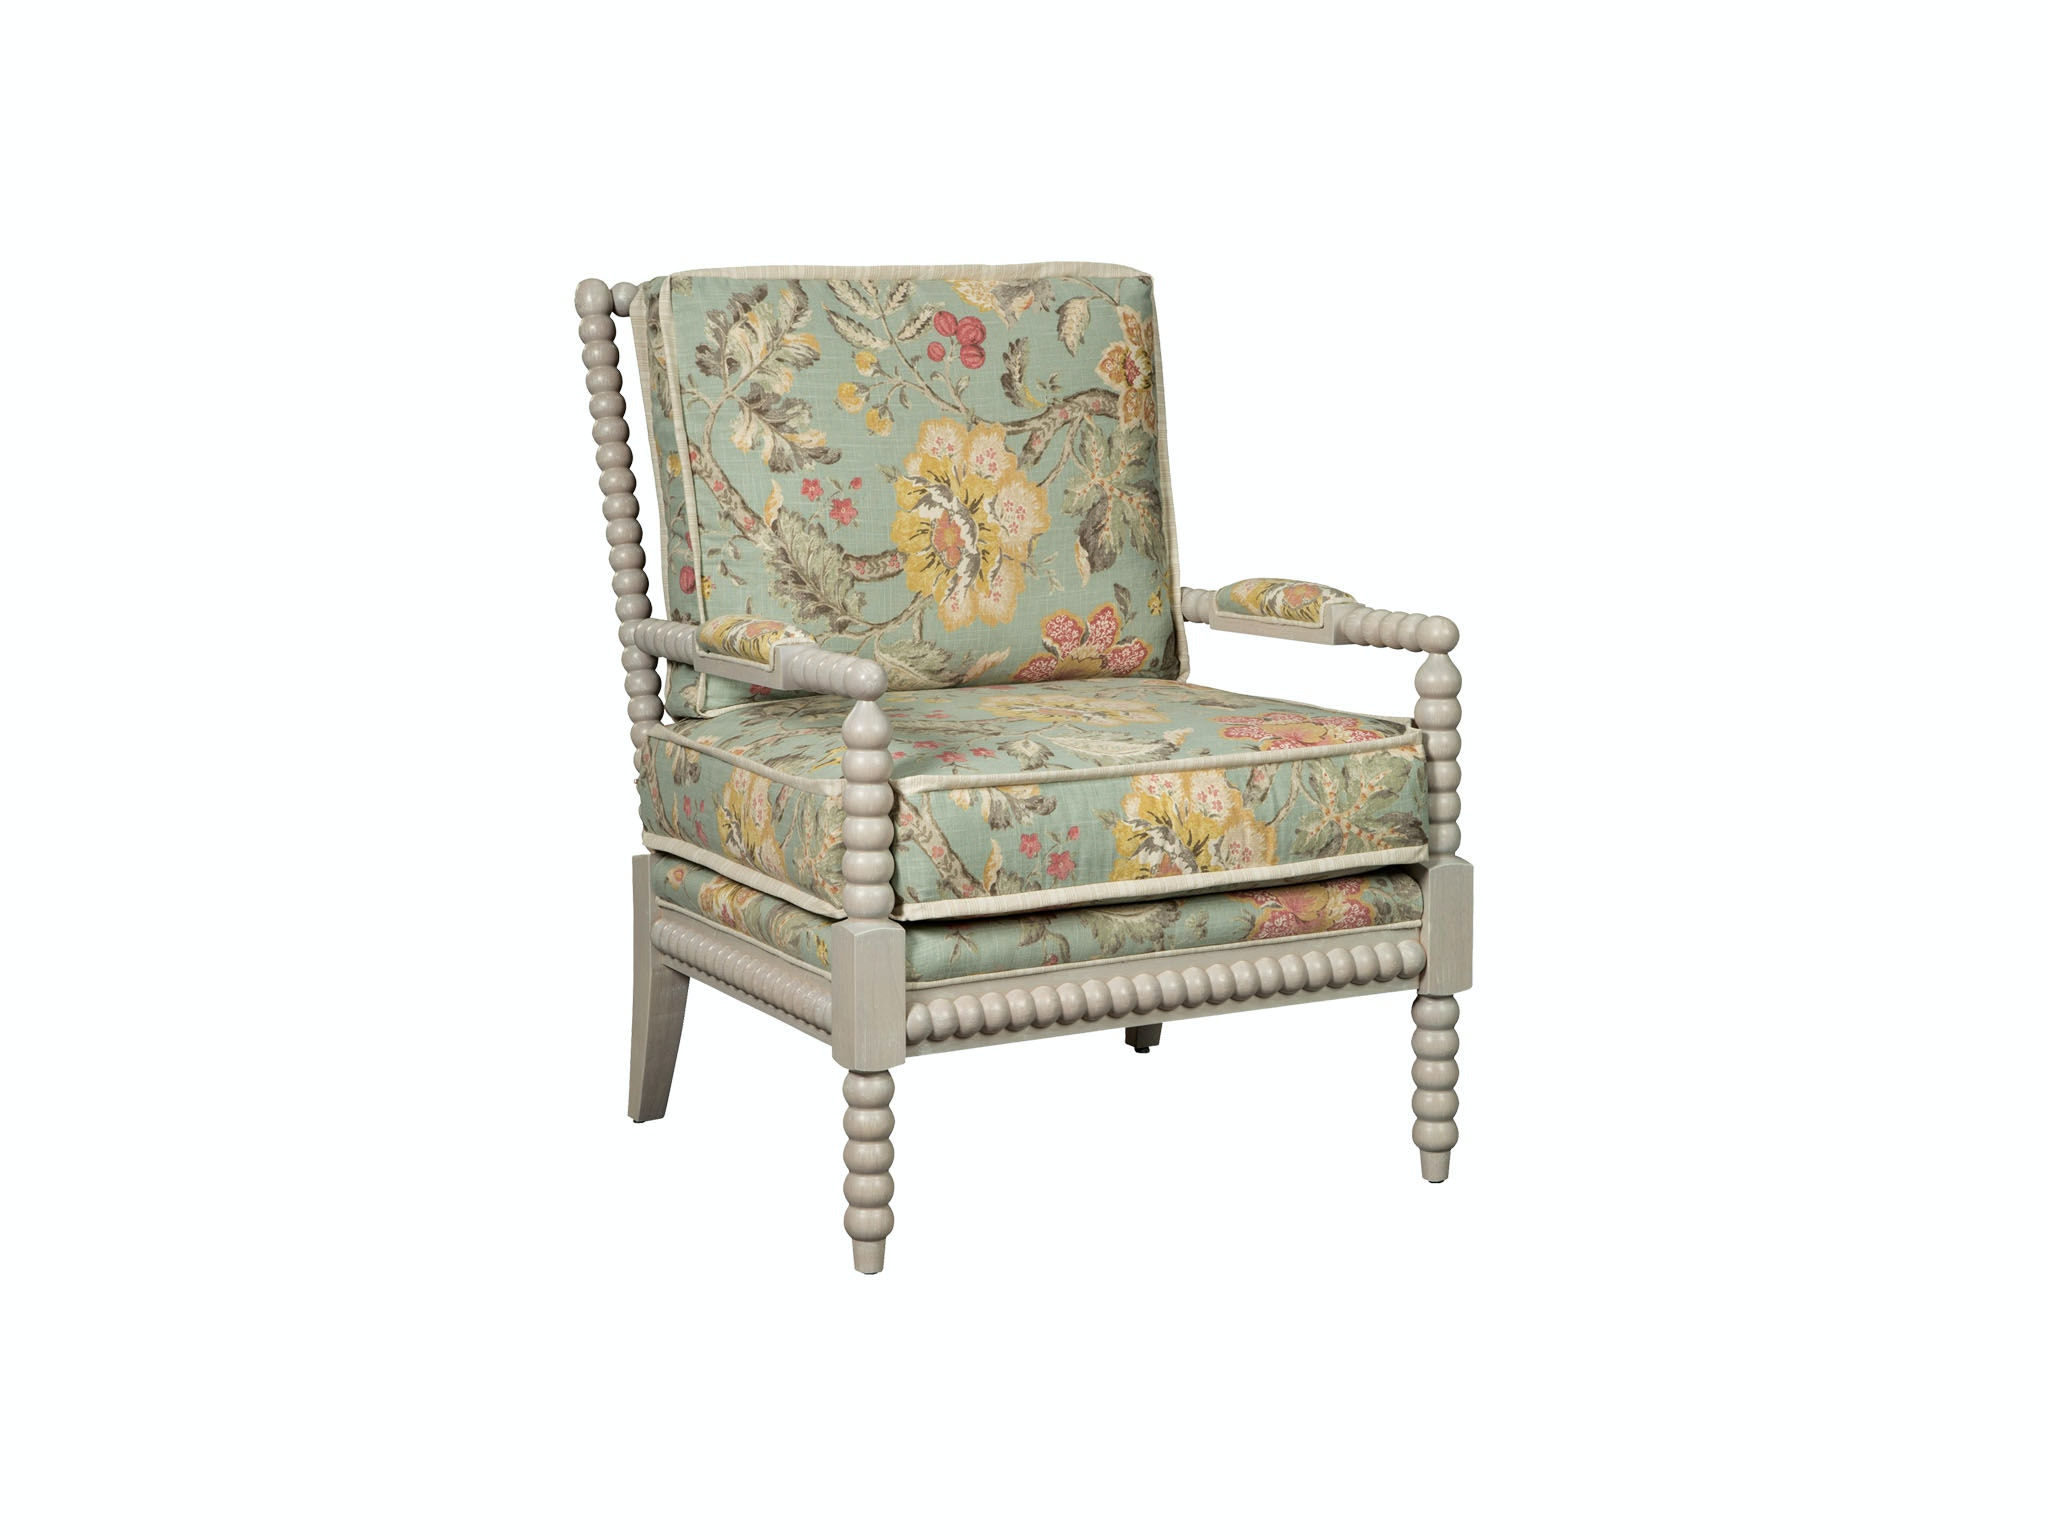 P074910BD. Chair  sc 1 st  Craftmaster Furniture & Paula Deen by Craftmaster Furniture - CraftMaster - Hiddenite NC